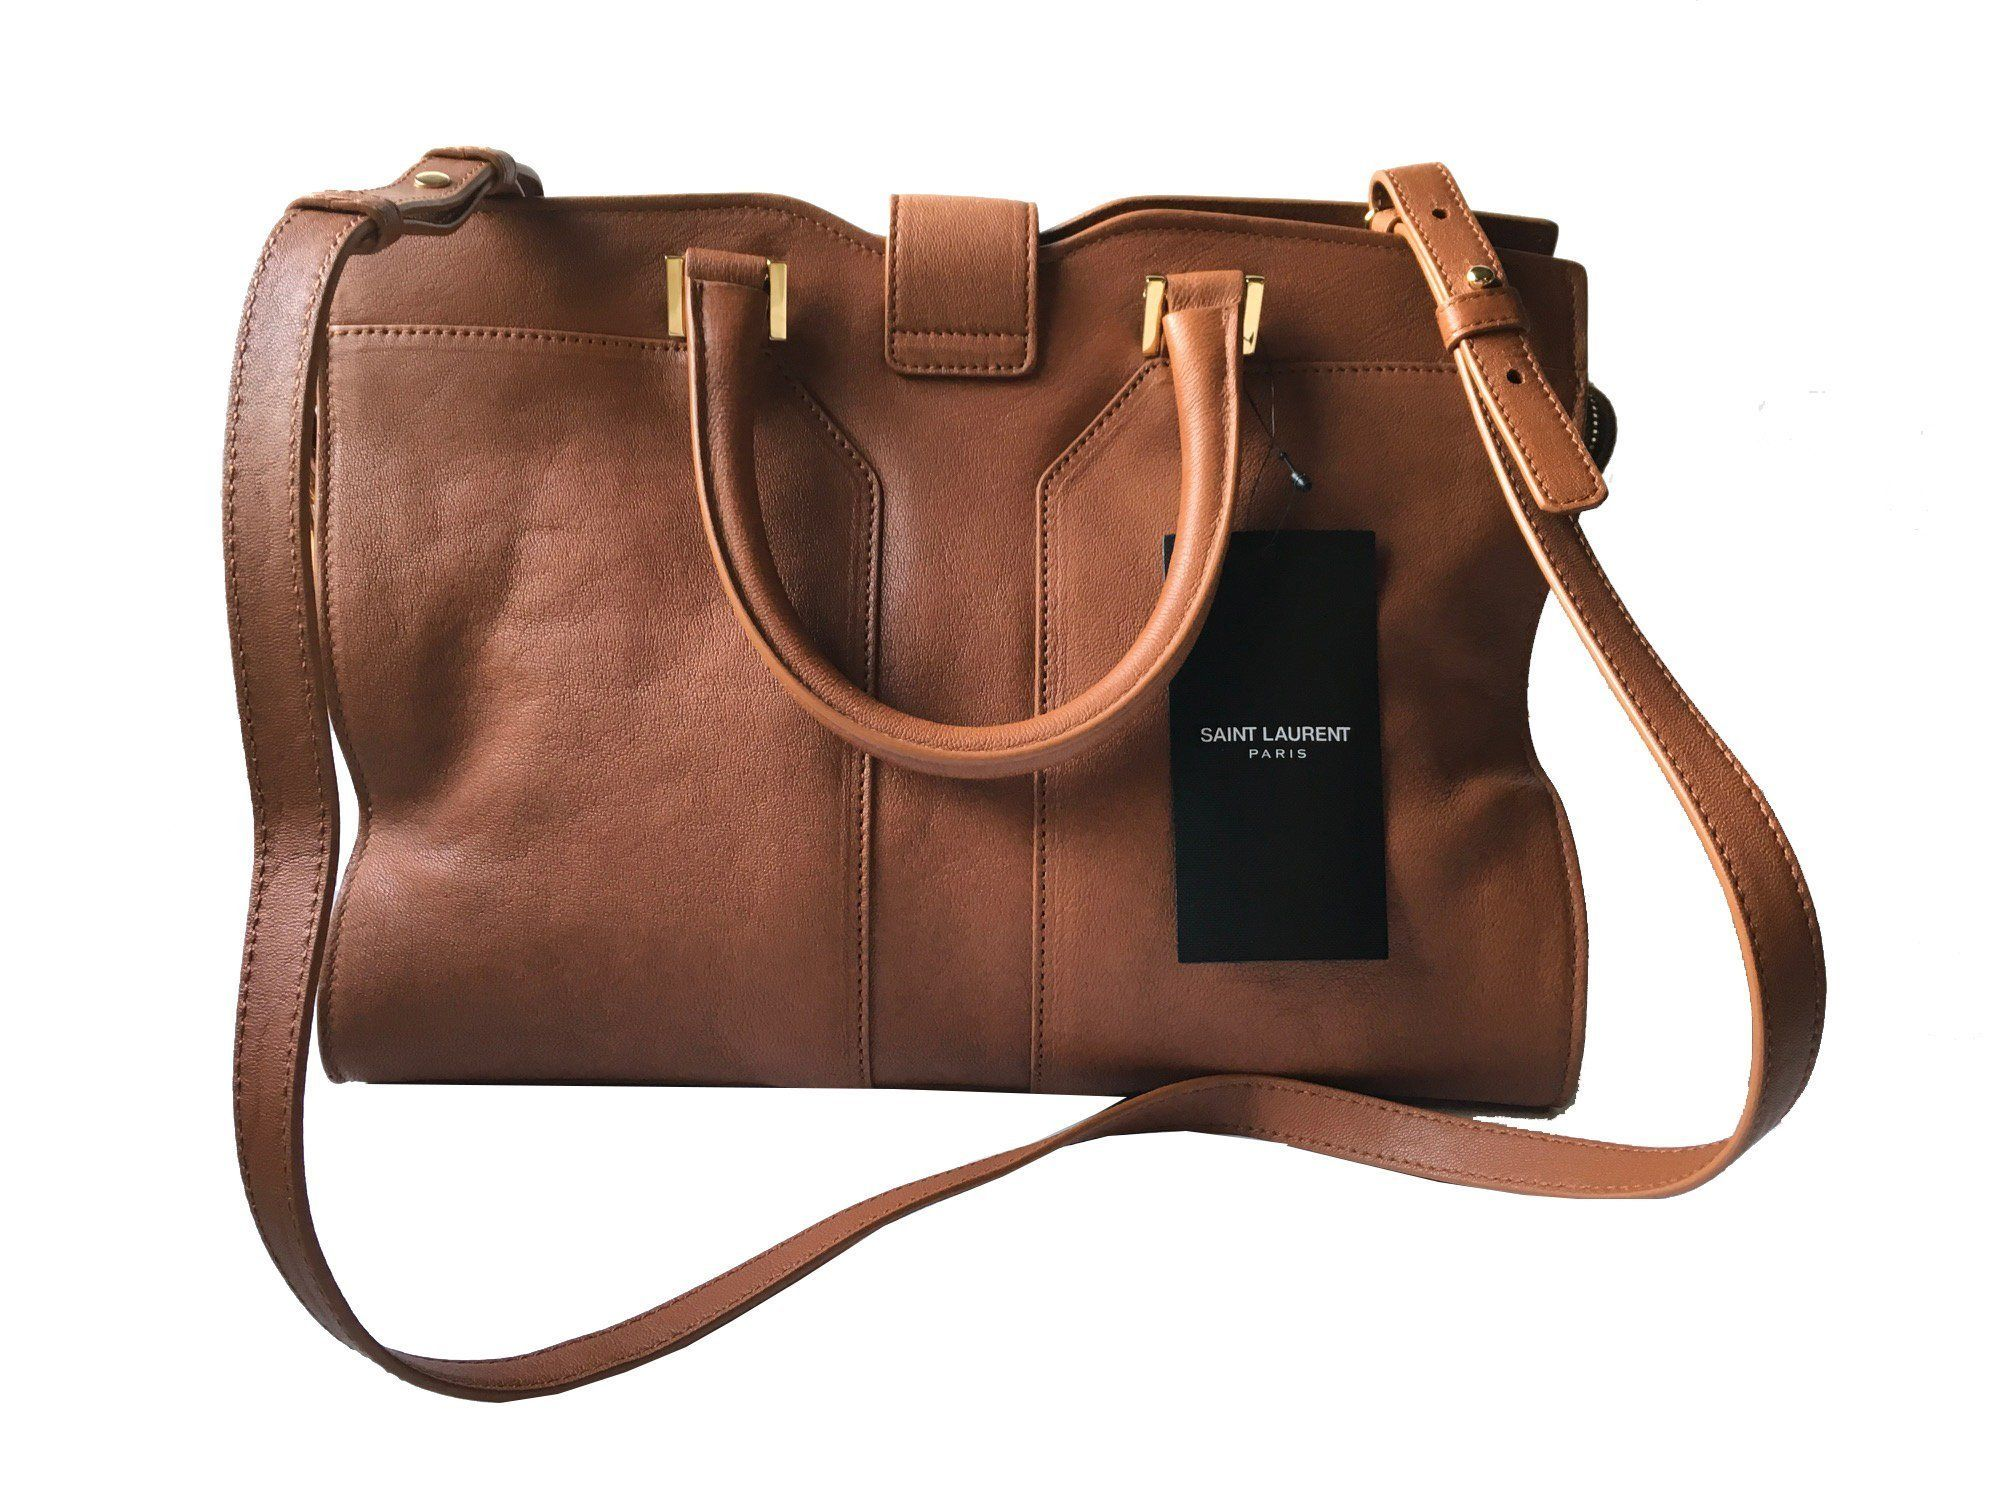 480ef7afb0 Saint Laurent YSL Women's Brown Ligne Y Satchel Handbag 400666 ...